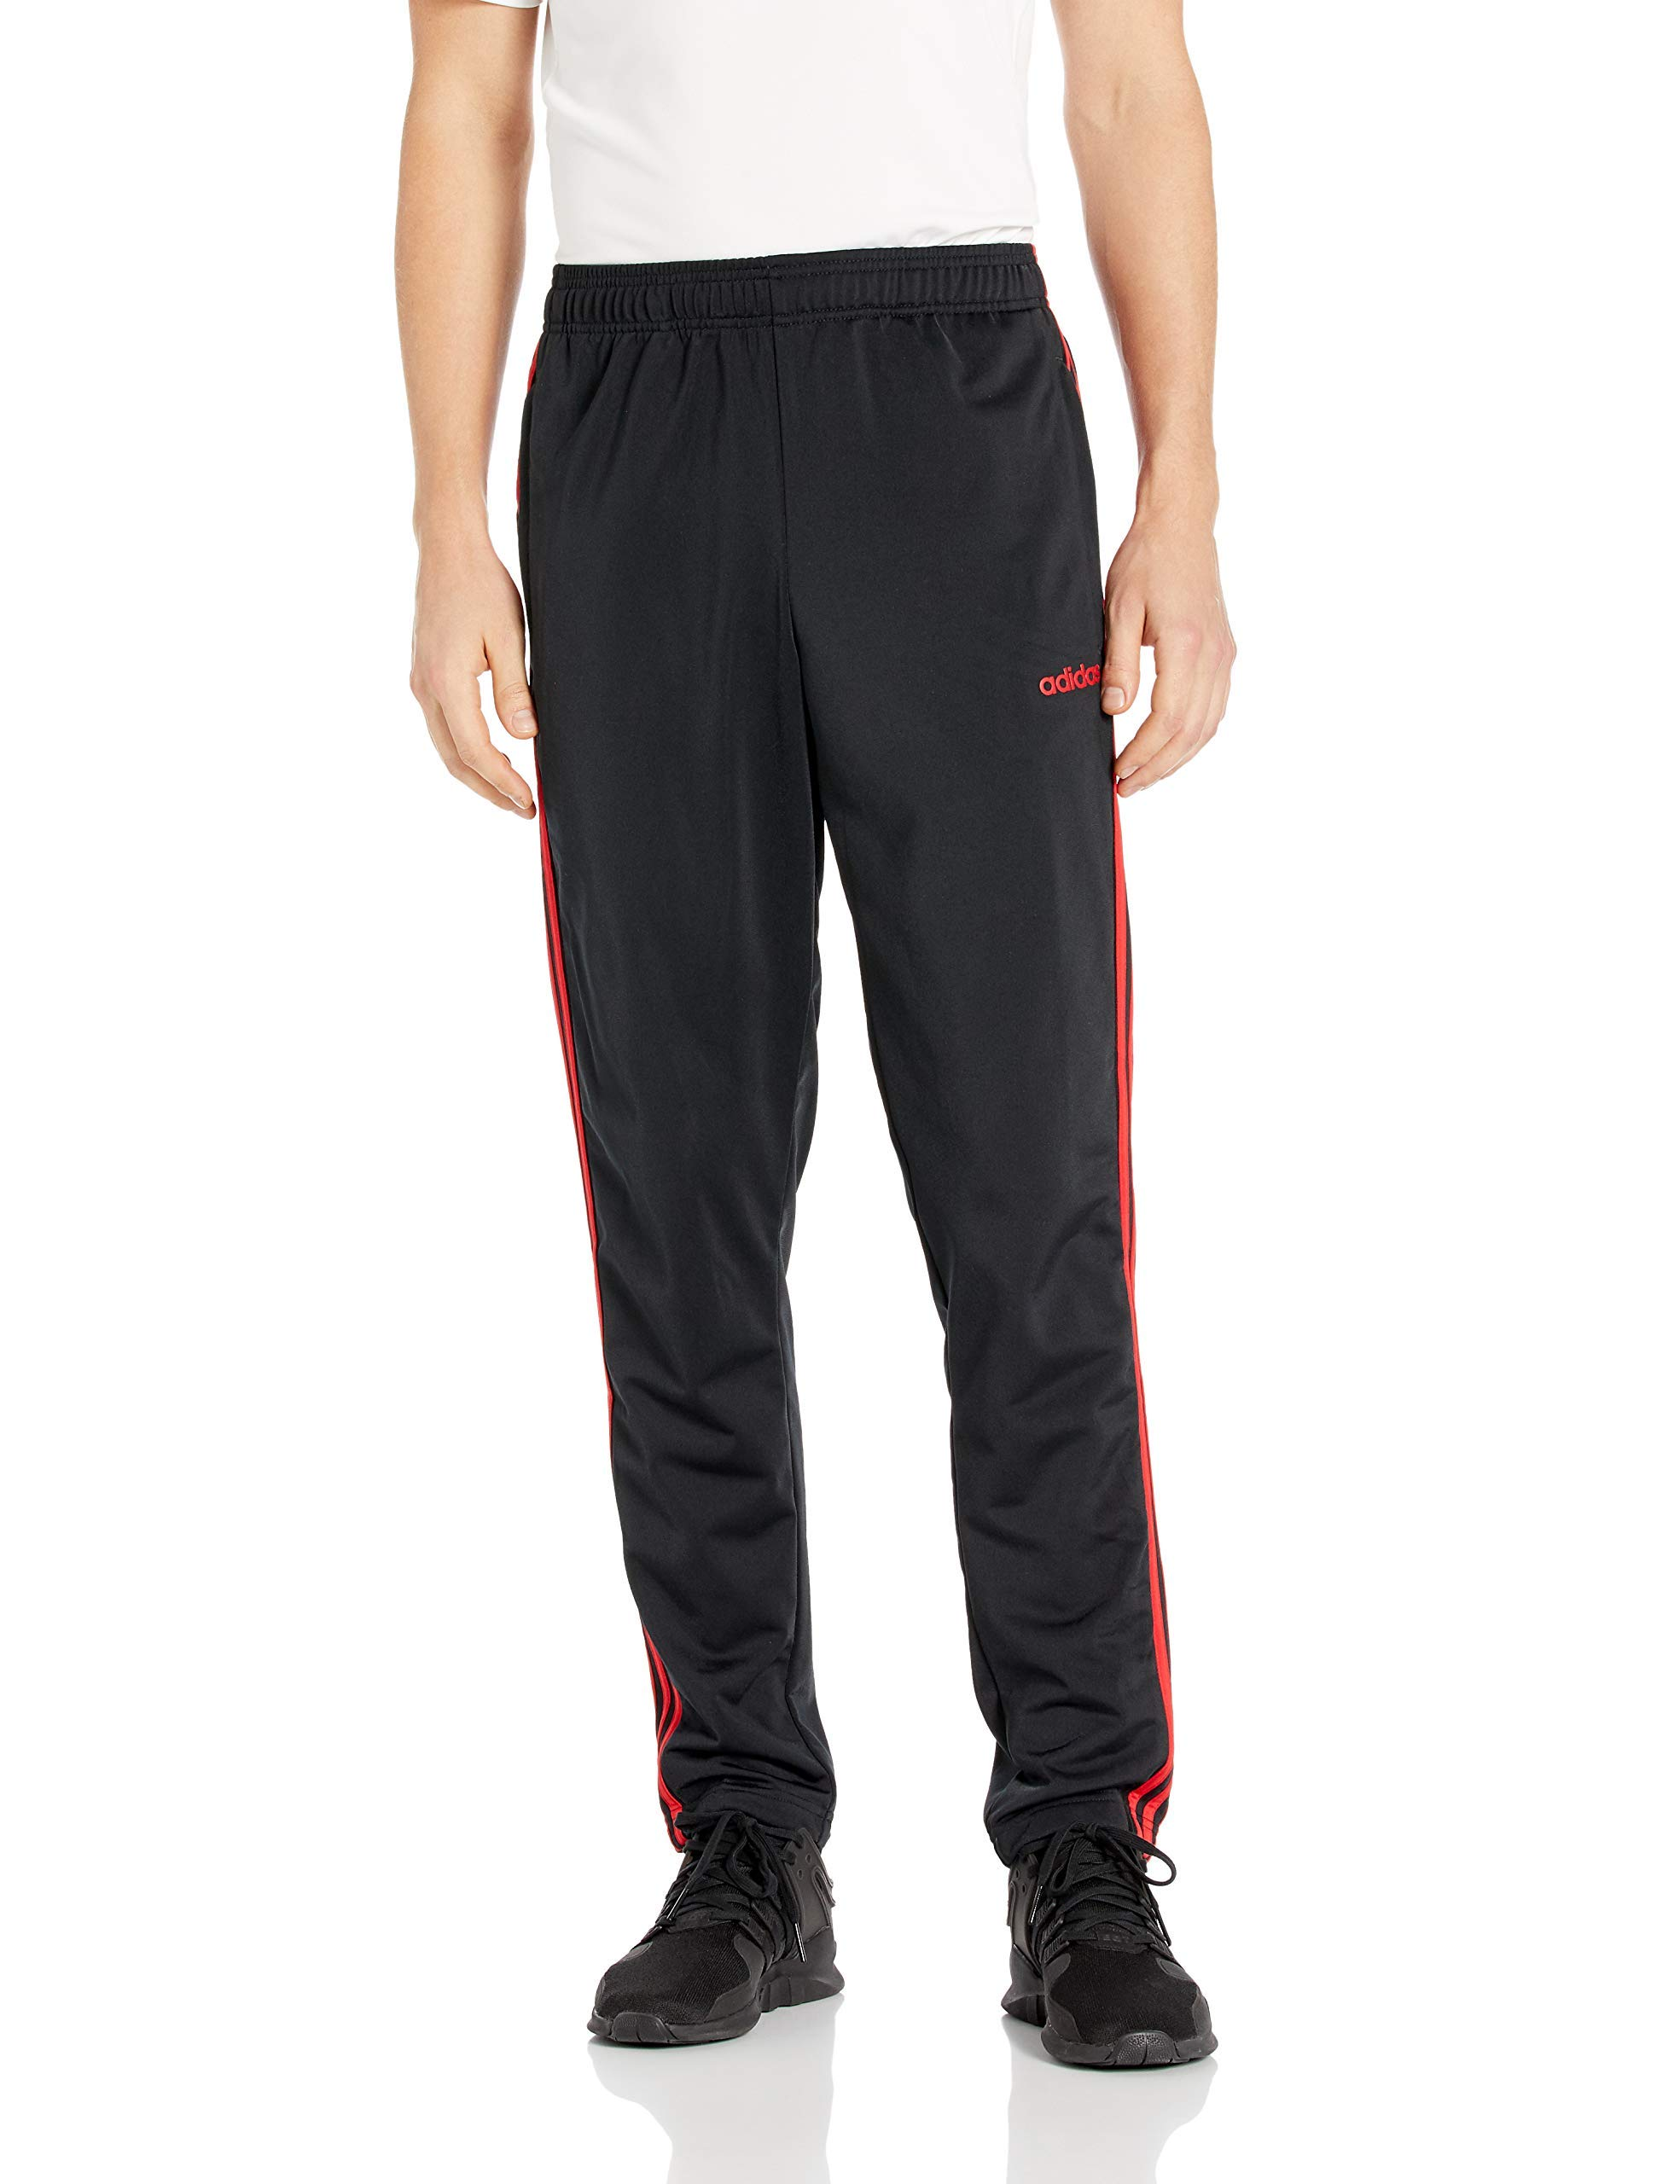 adidas Men's Athletics Essential Tricot 3-Stripe Pants, Active Black, Small by adidas